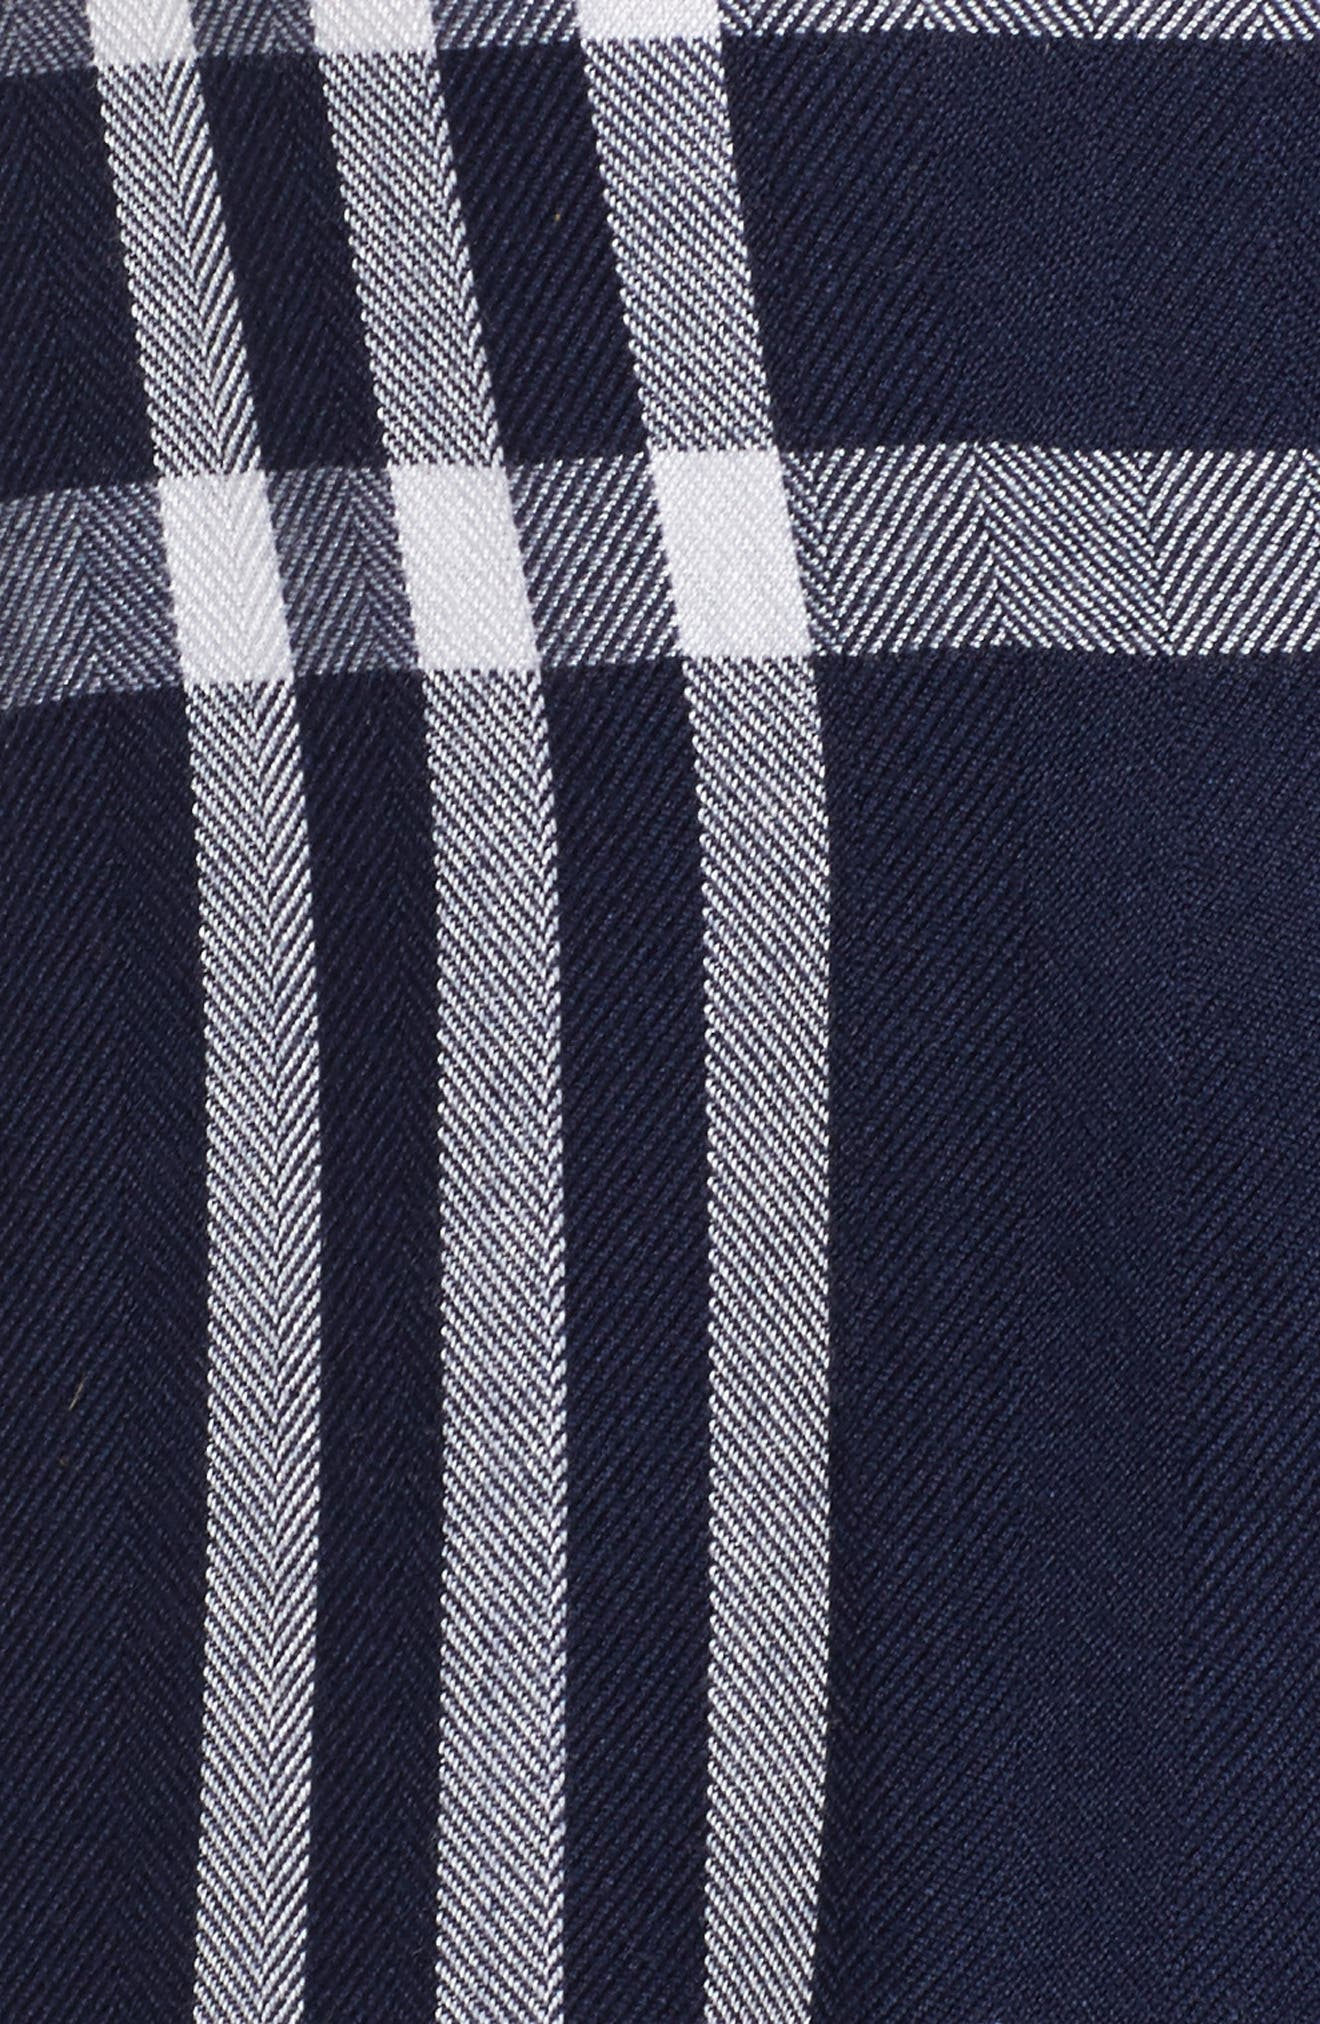 Plaid Short Pajamas,                             Alternate thumbnail 5, color,                             402